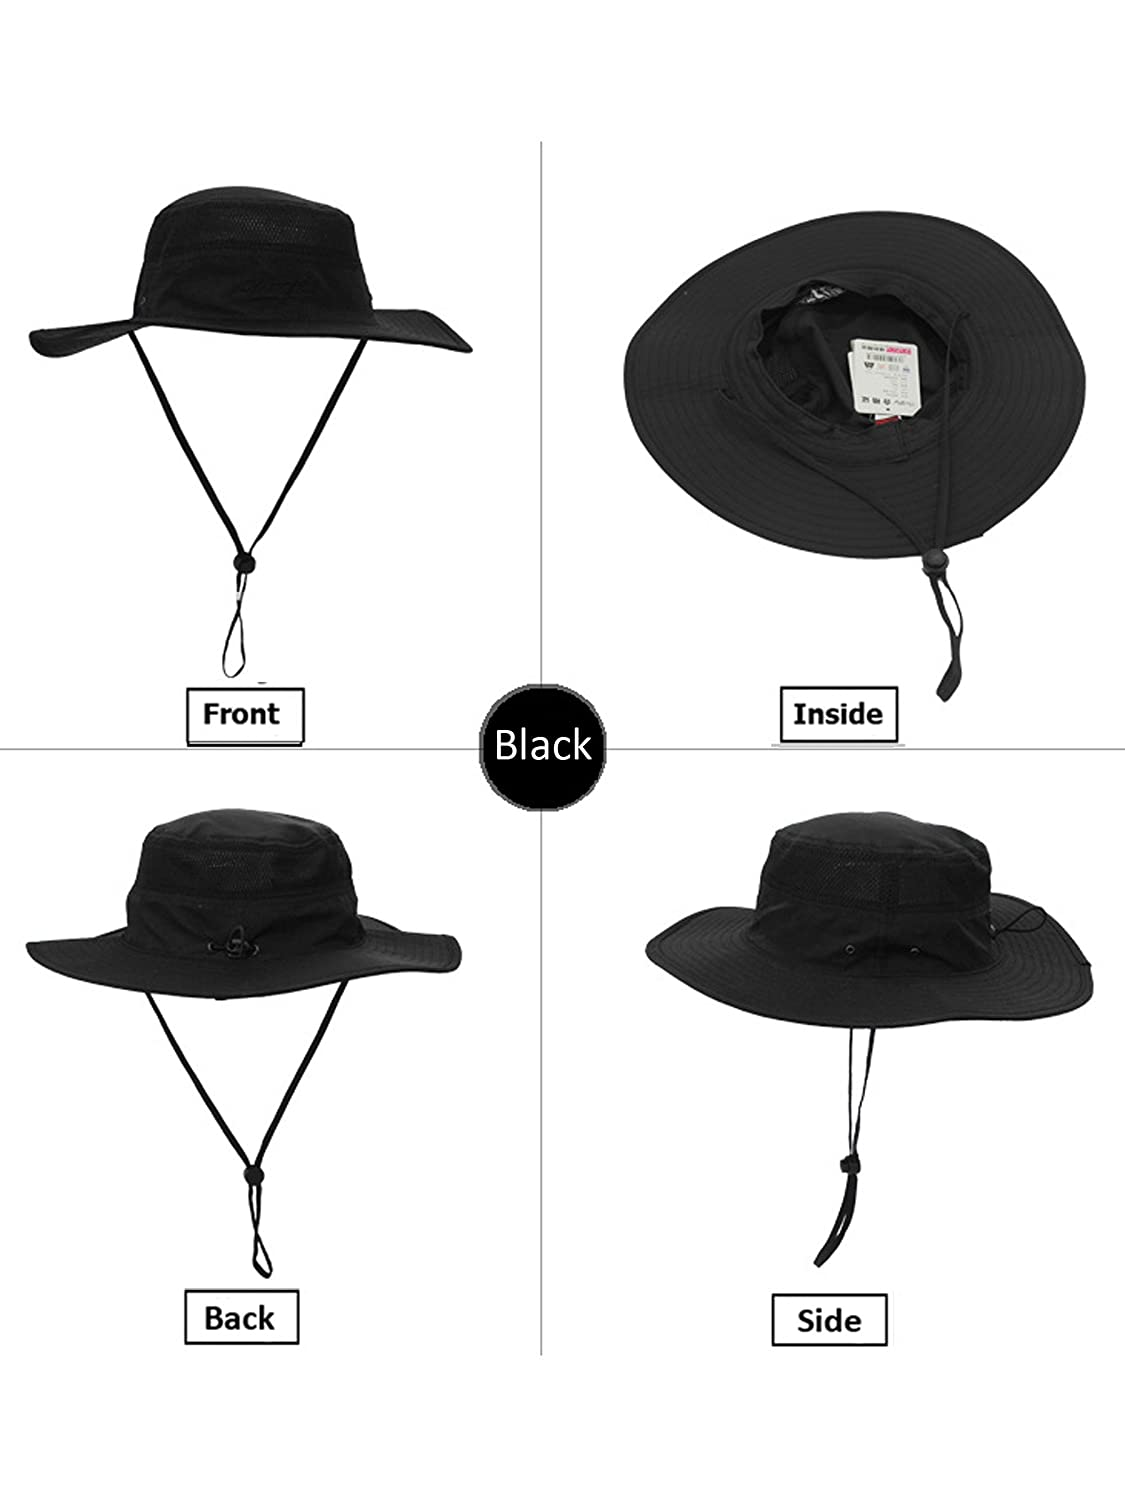 Unisex Outdoor Bucket Hat Fisherman Hat Breathable Quick Drying Sun Protection for Head Circumference 55-60 cm